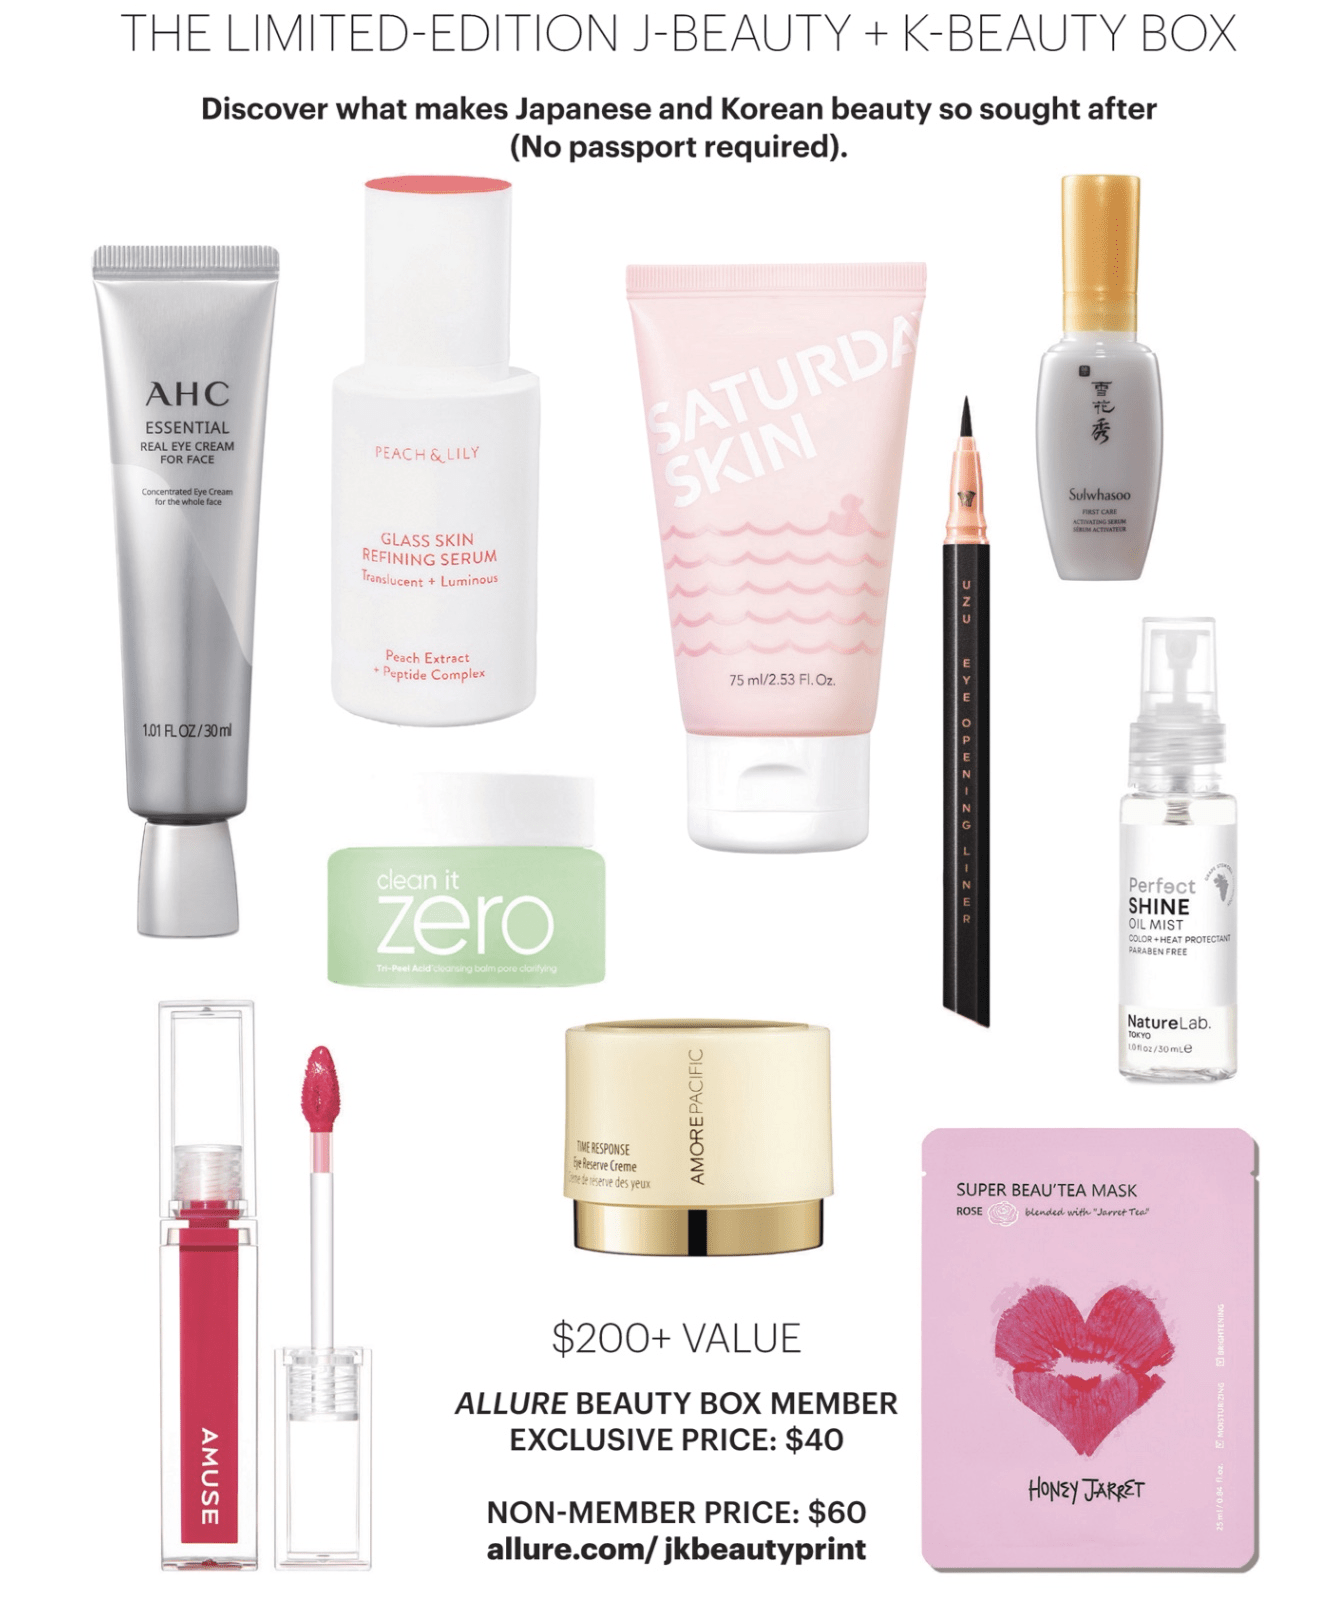 Allure Limited Edition J-Beauty + K-Beauty Box – Coming Soon!